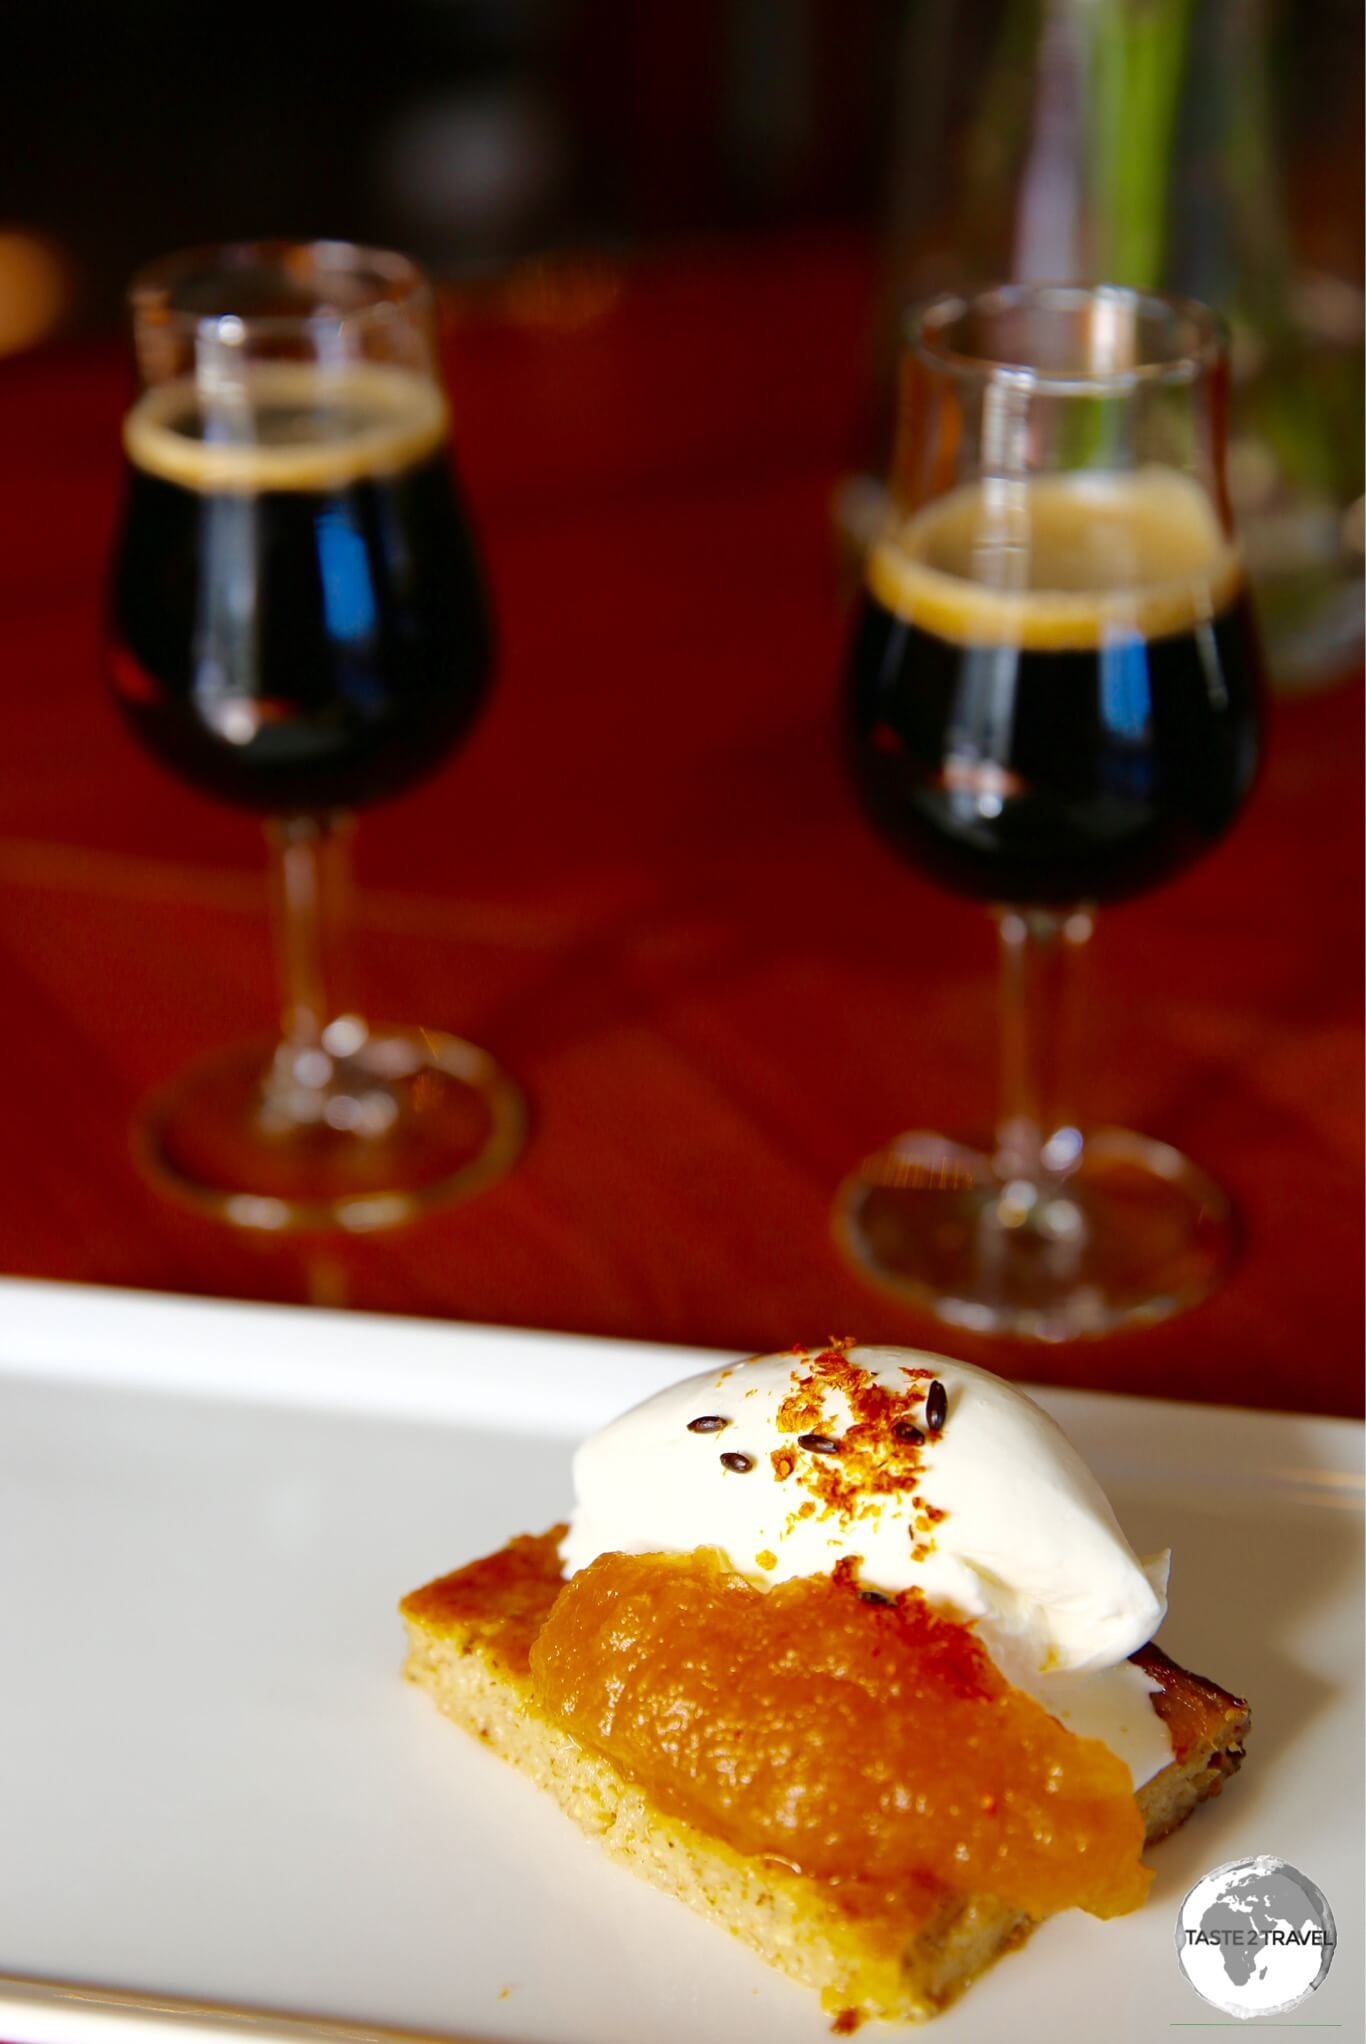 An Åland pancake paired with two different stouts at the Skallhagen brewery.